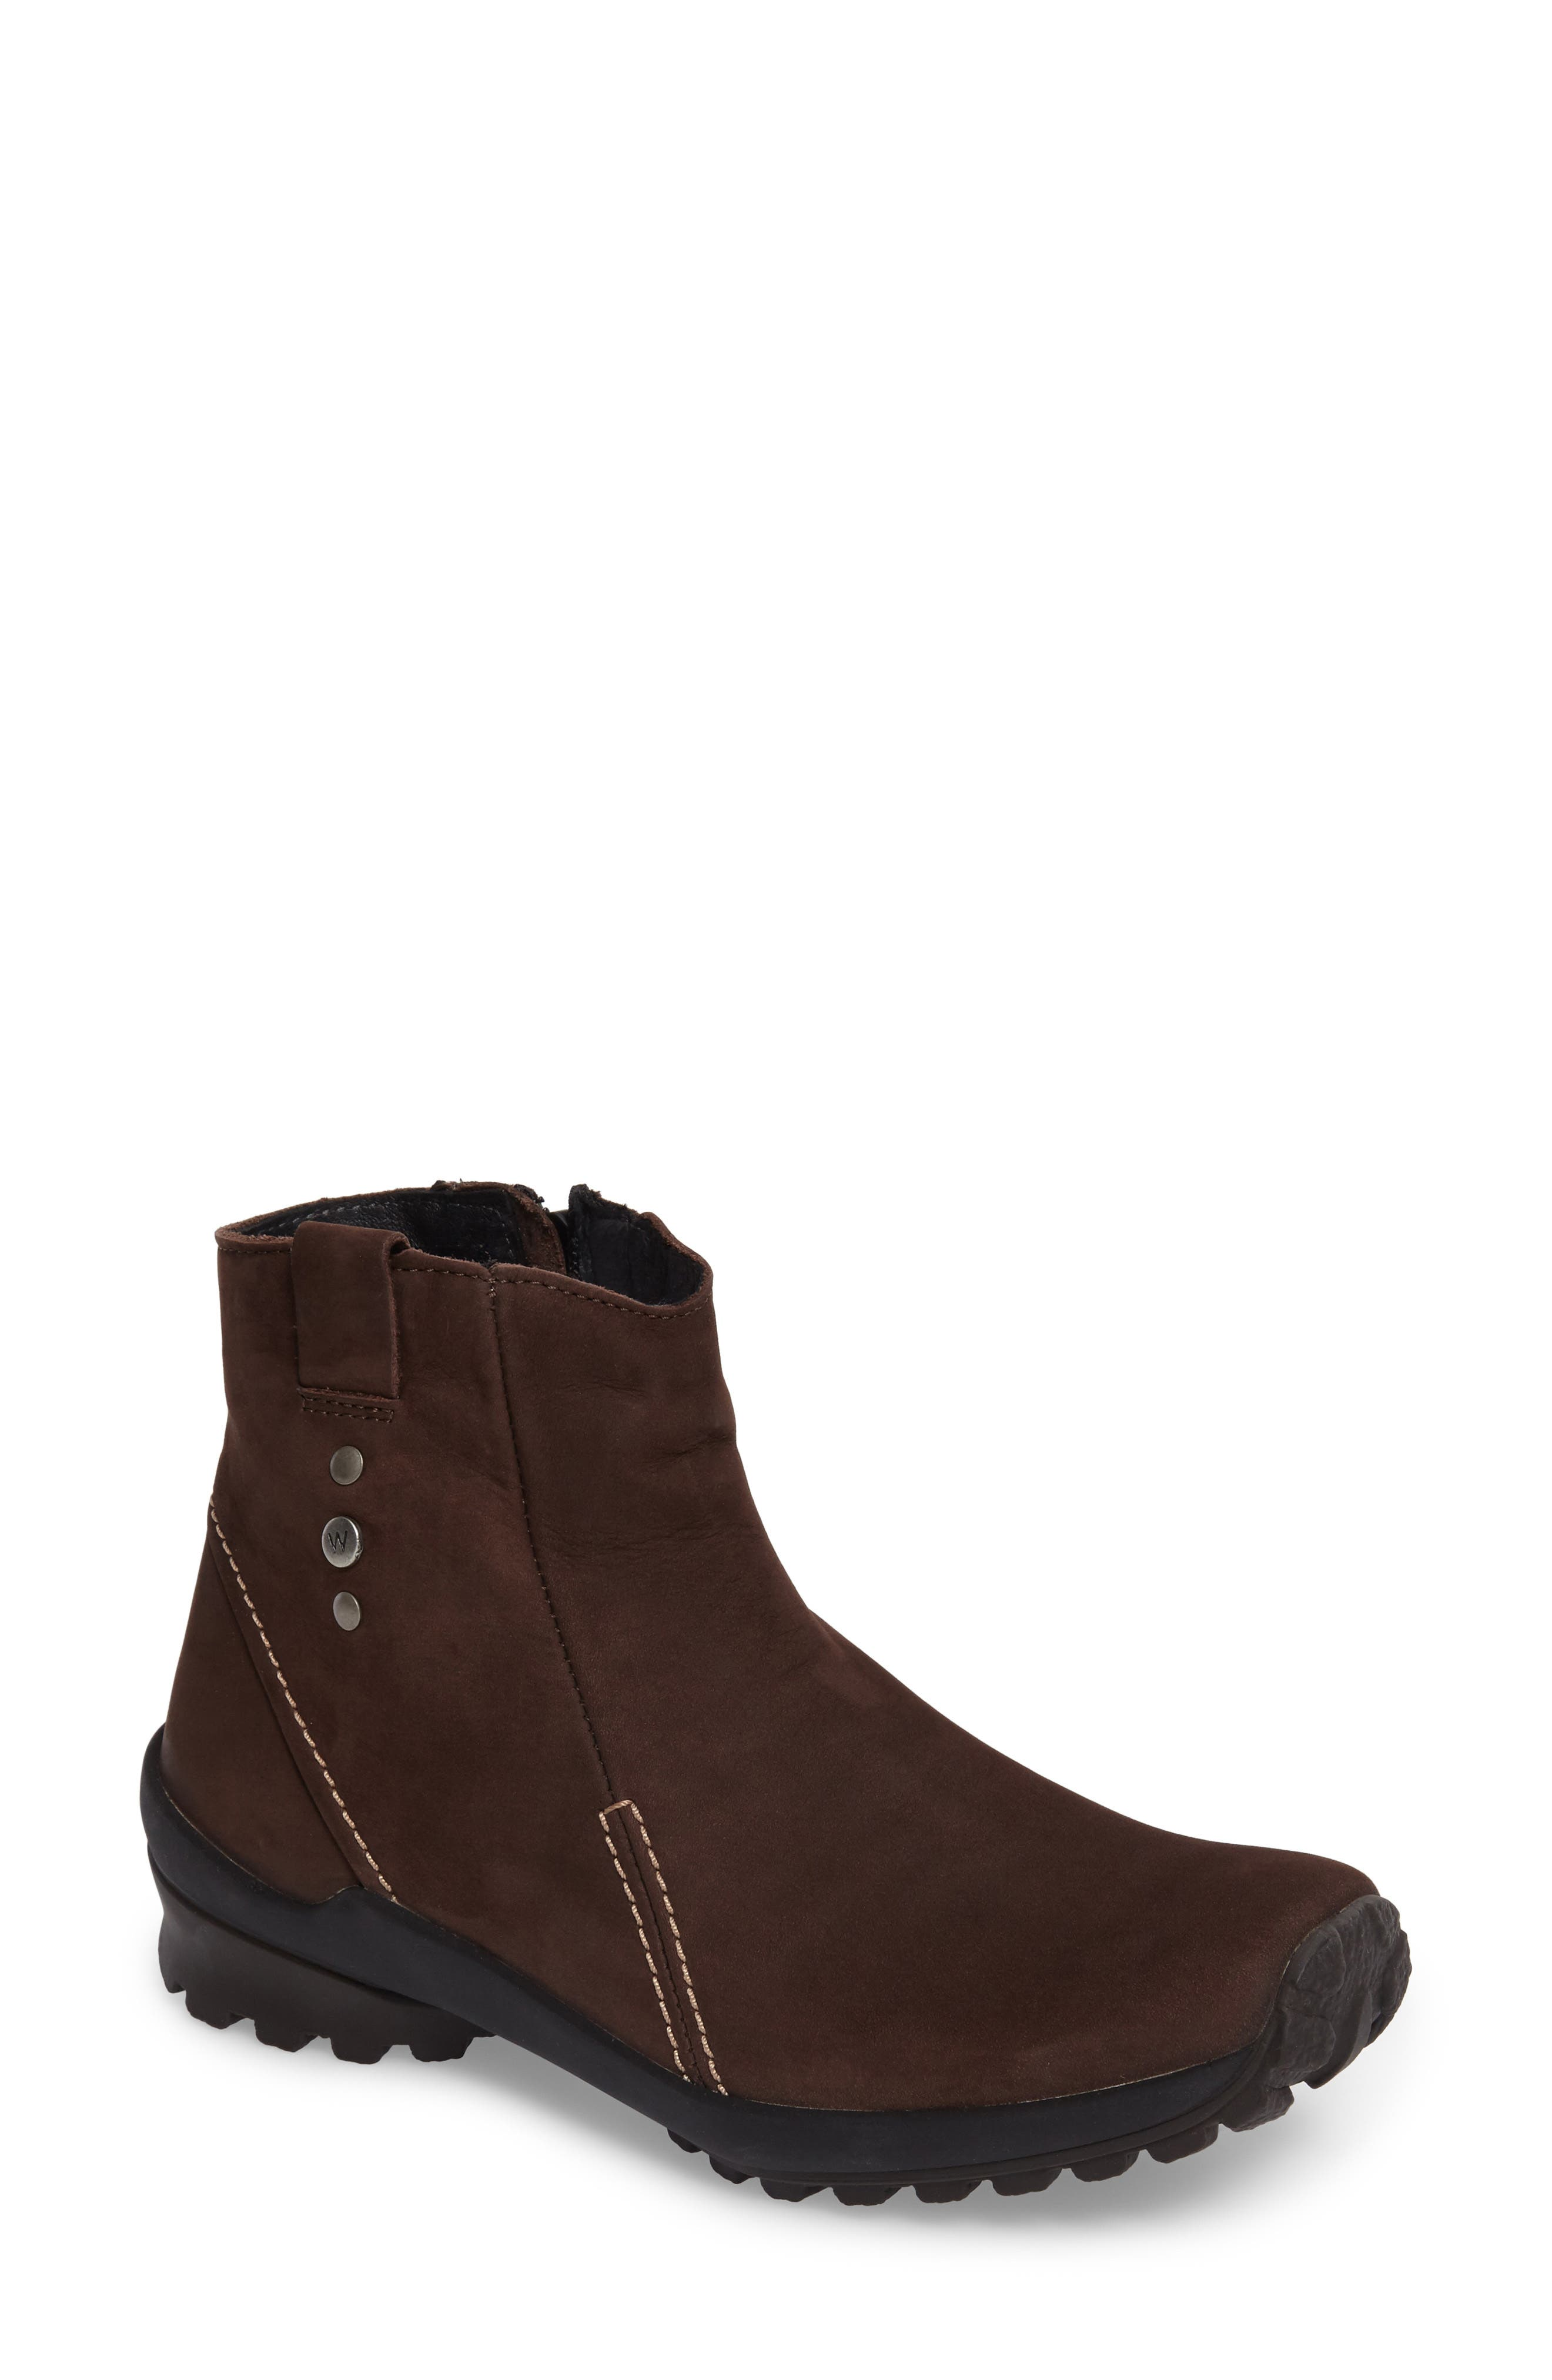 Alternate Image 1 Selected - Wolky Zion Waterproof Insulated Winter Boot (Women)